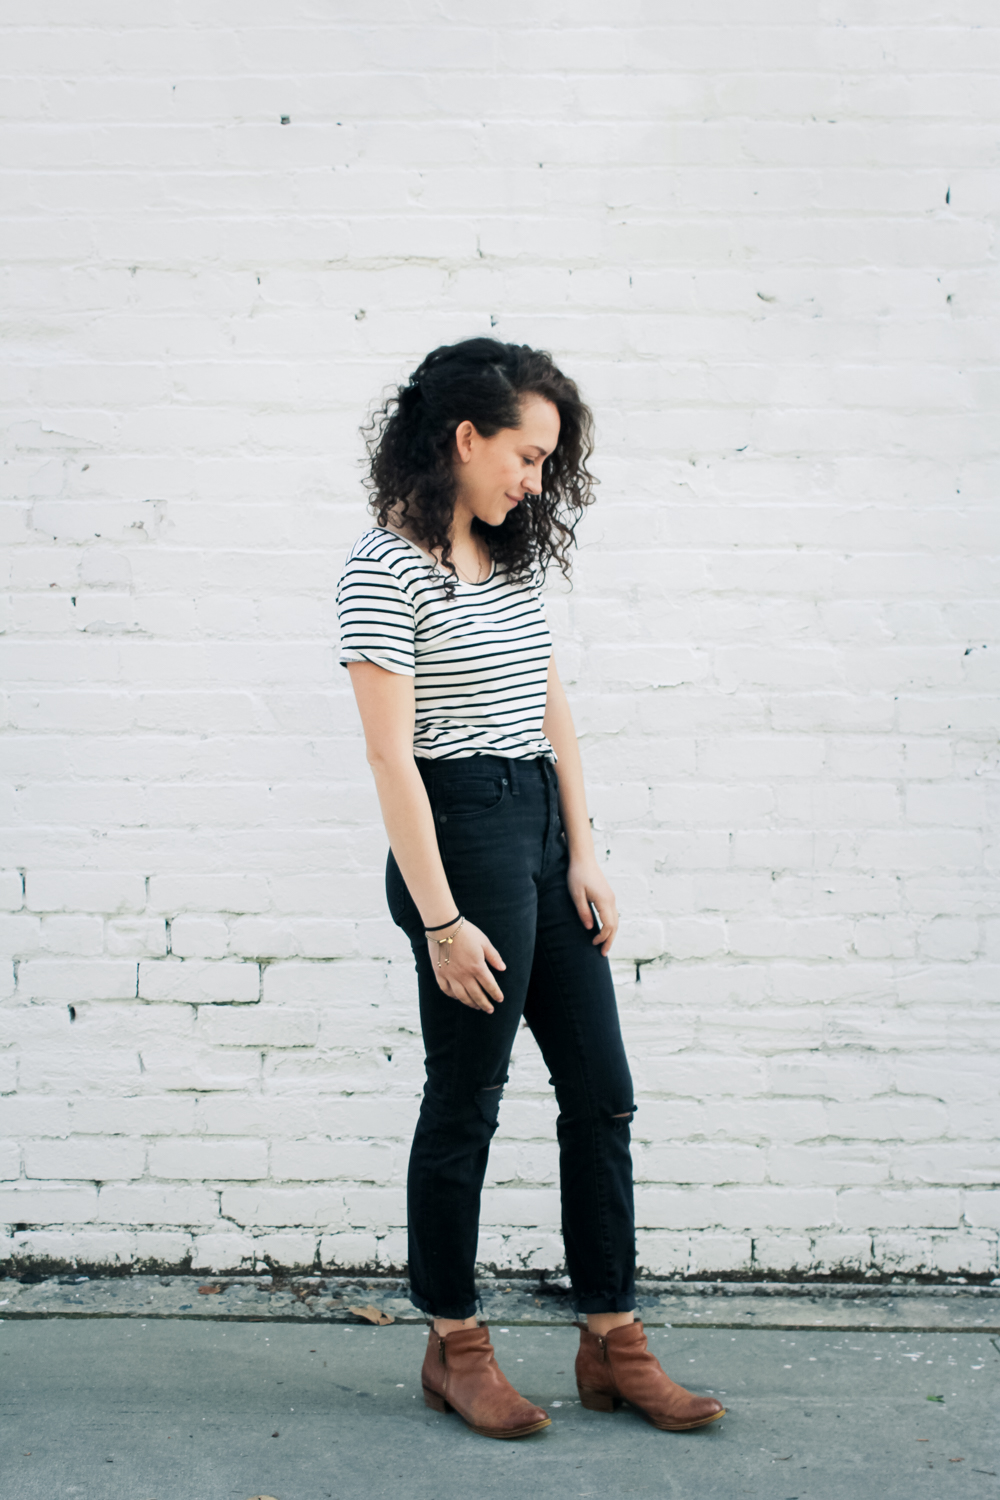 My outfit made up of stripes, black high rise Madwell jeans and ankle boots for Day 5 of the Style Bee Spring 10x10/Unfancy Remix challenge. simple, classic, causal style brought to you from my spring capsule wardrobe! | tintedgreen